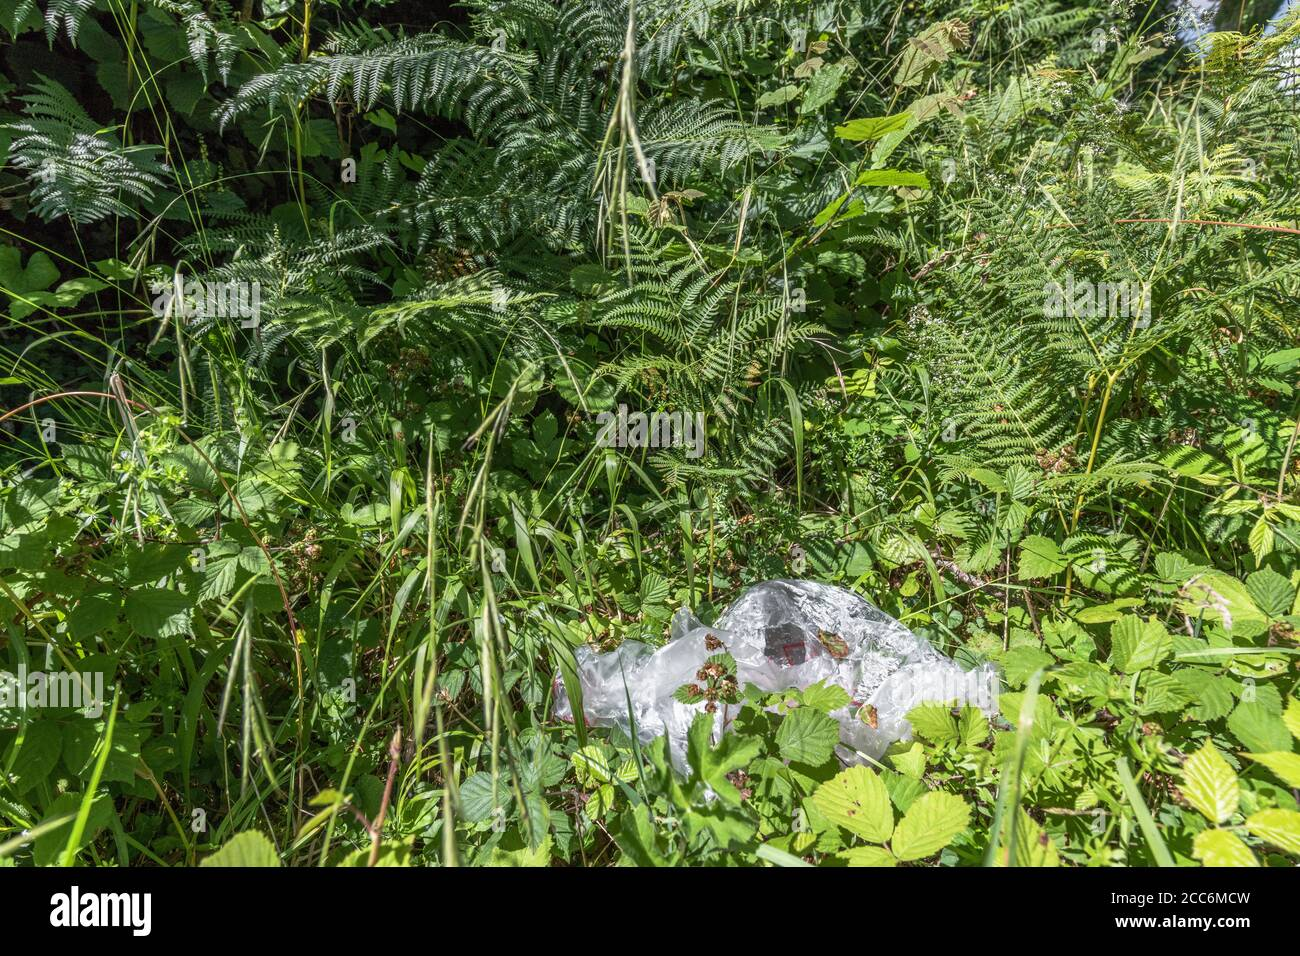 Transparent wrap plastic sheet discarded in rural hedgerow. Metaphor plastic pollution, environmental pollution, war on plastic waste, plastic rubbish Stock Photo